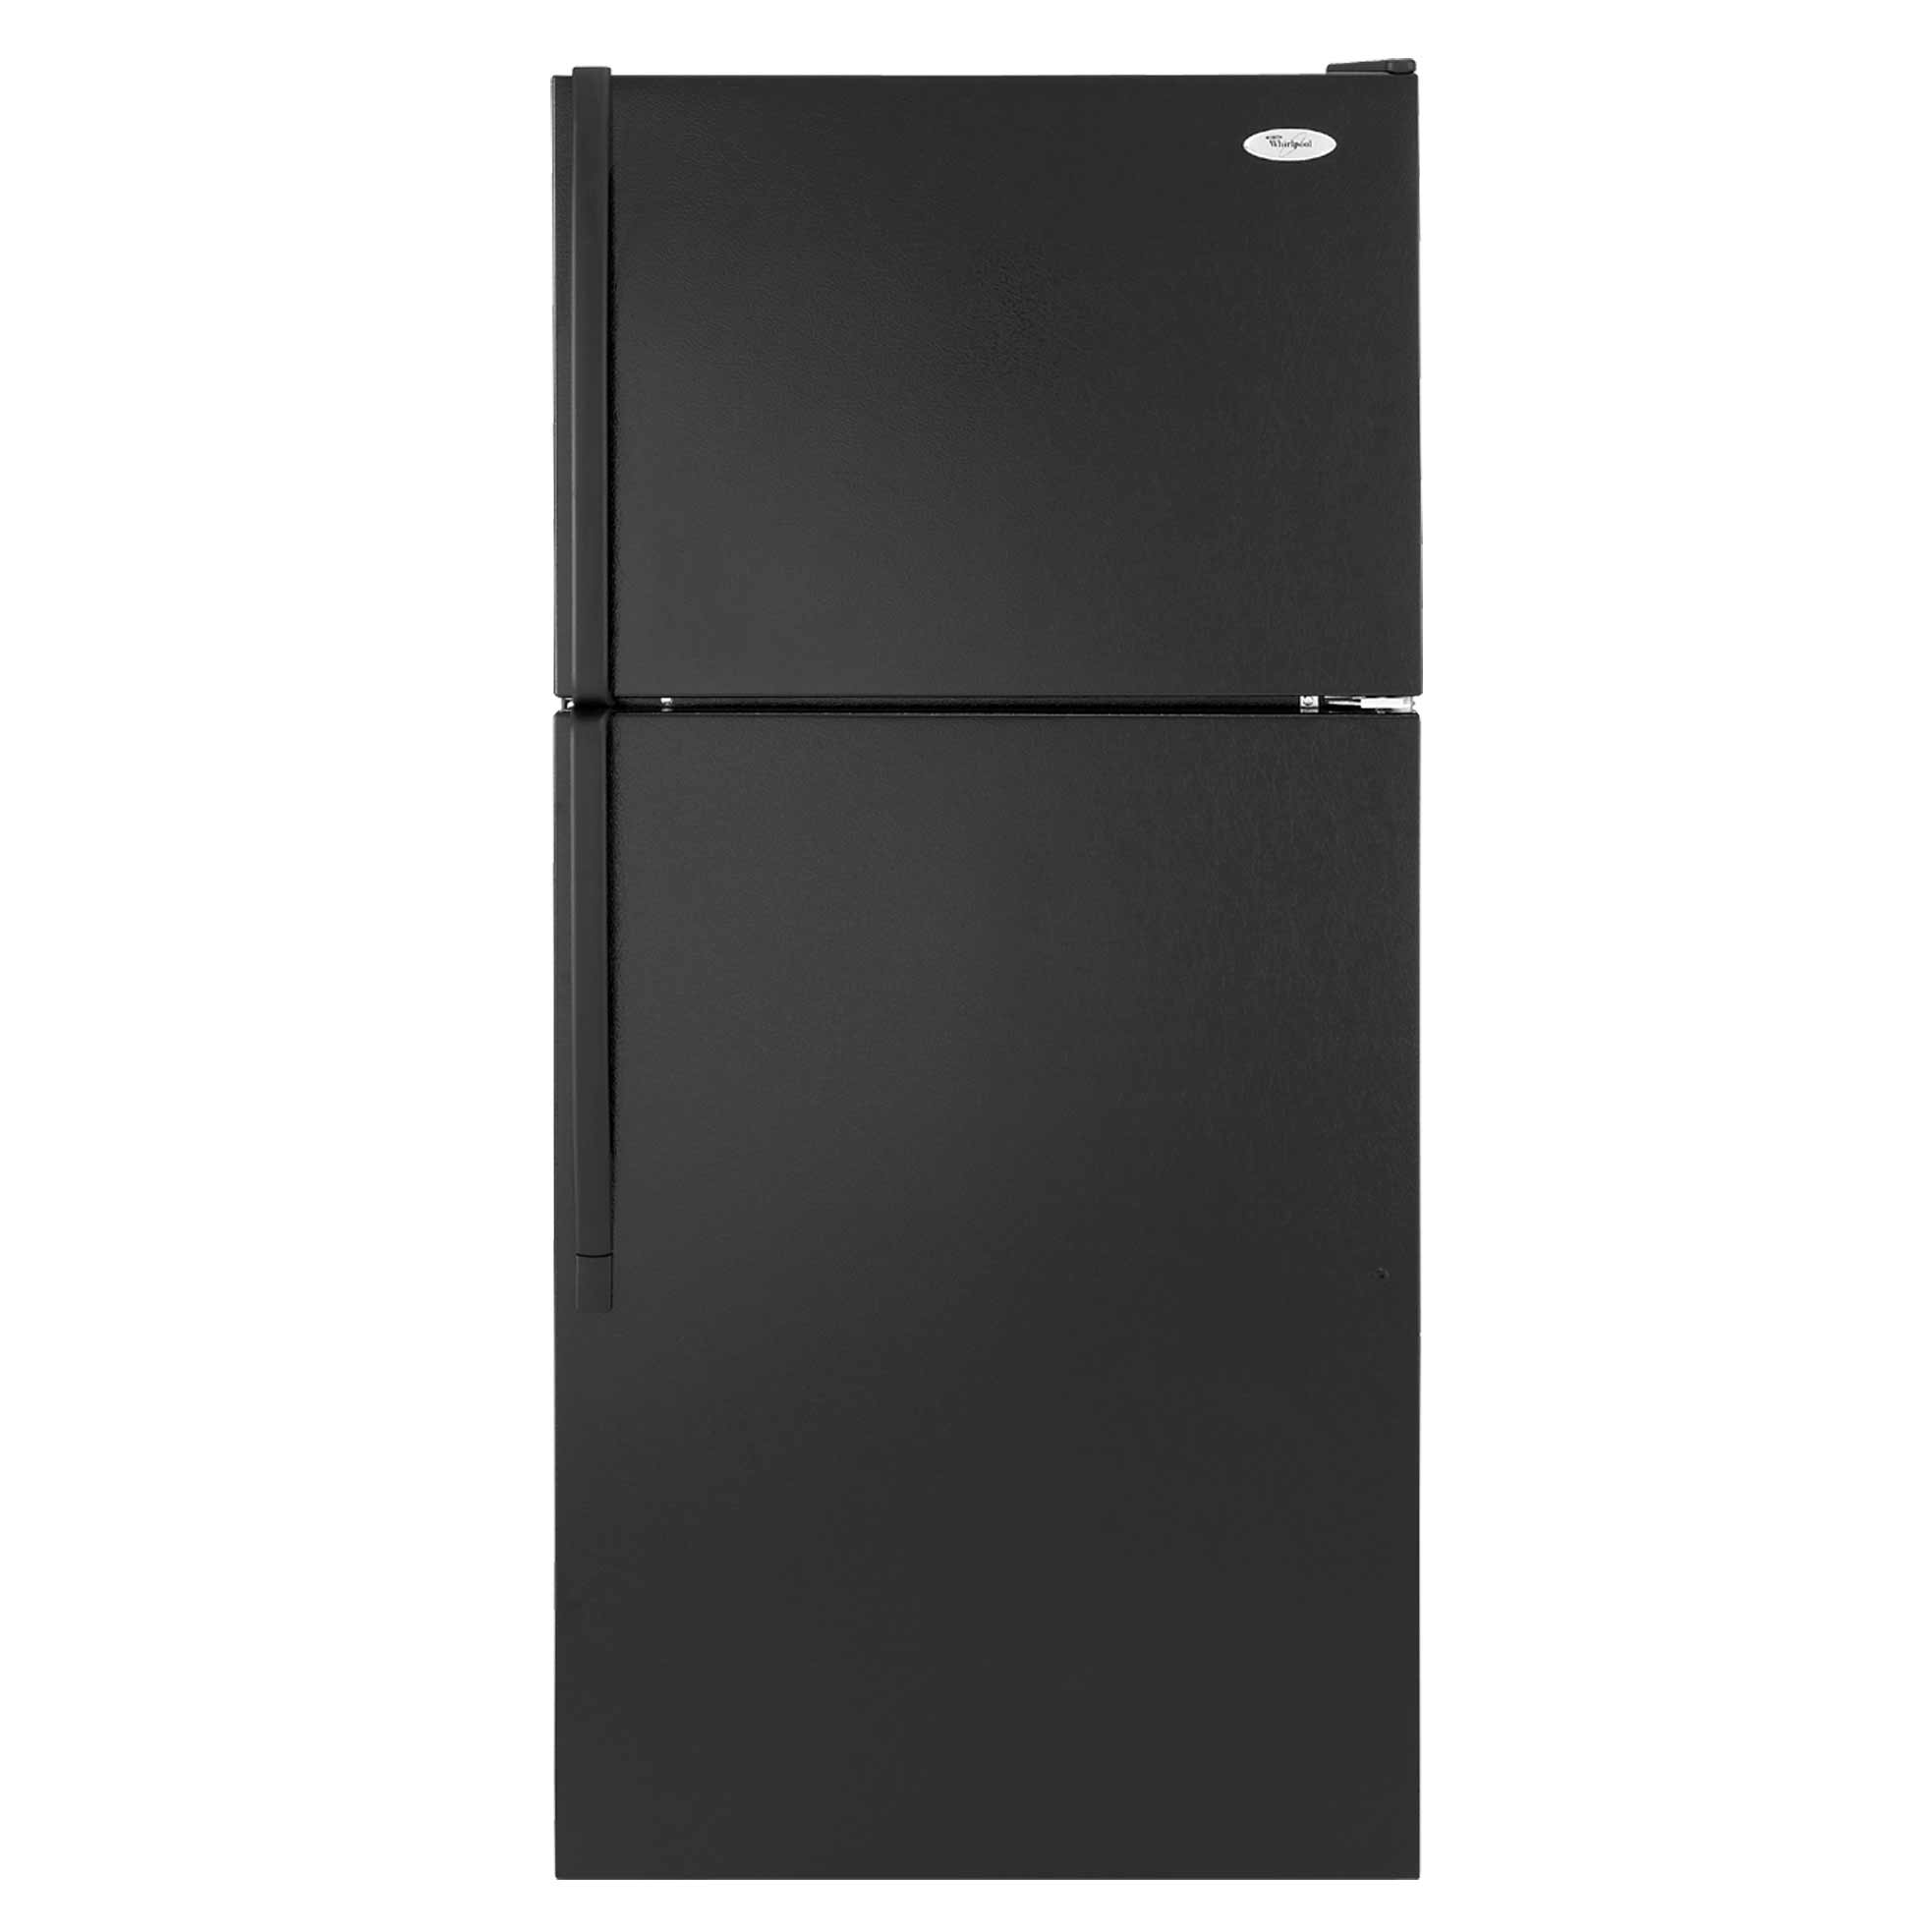 whirlpool black top mount refrigerator for home